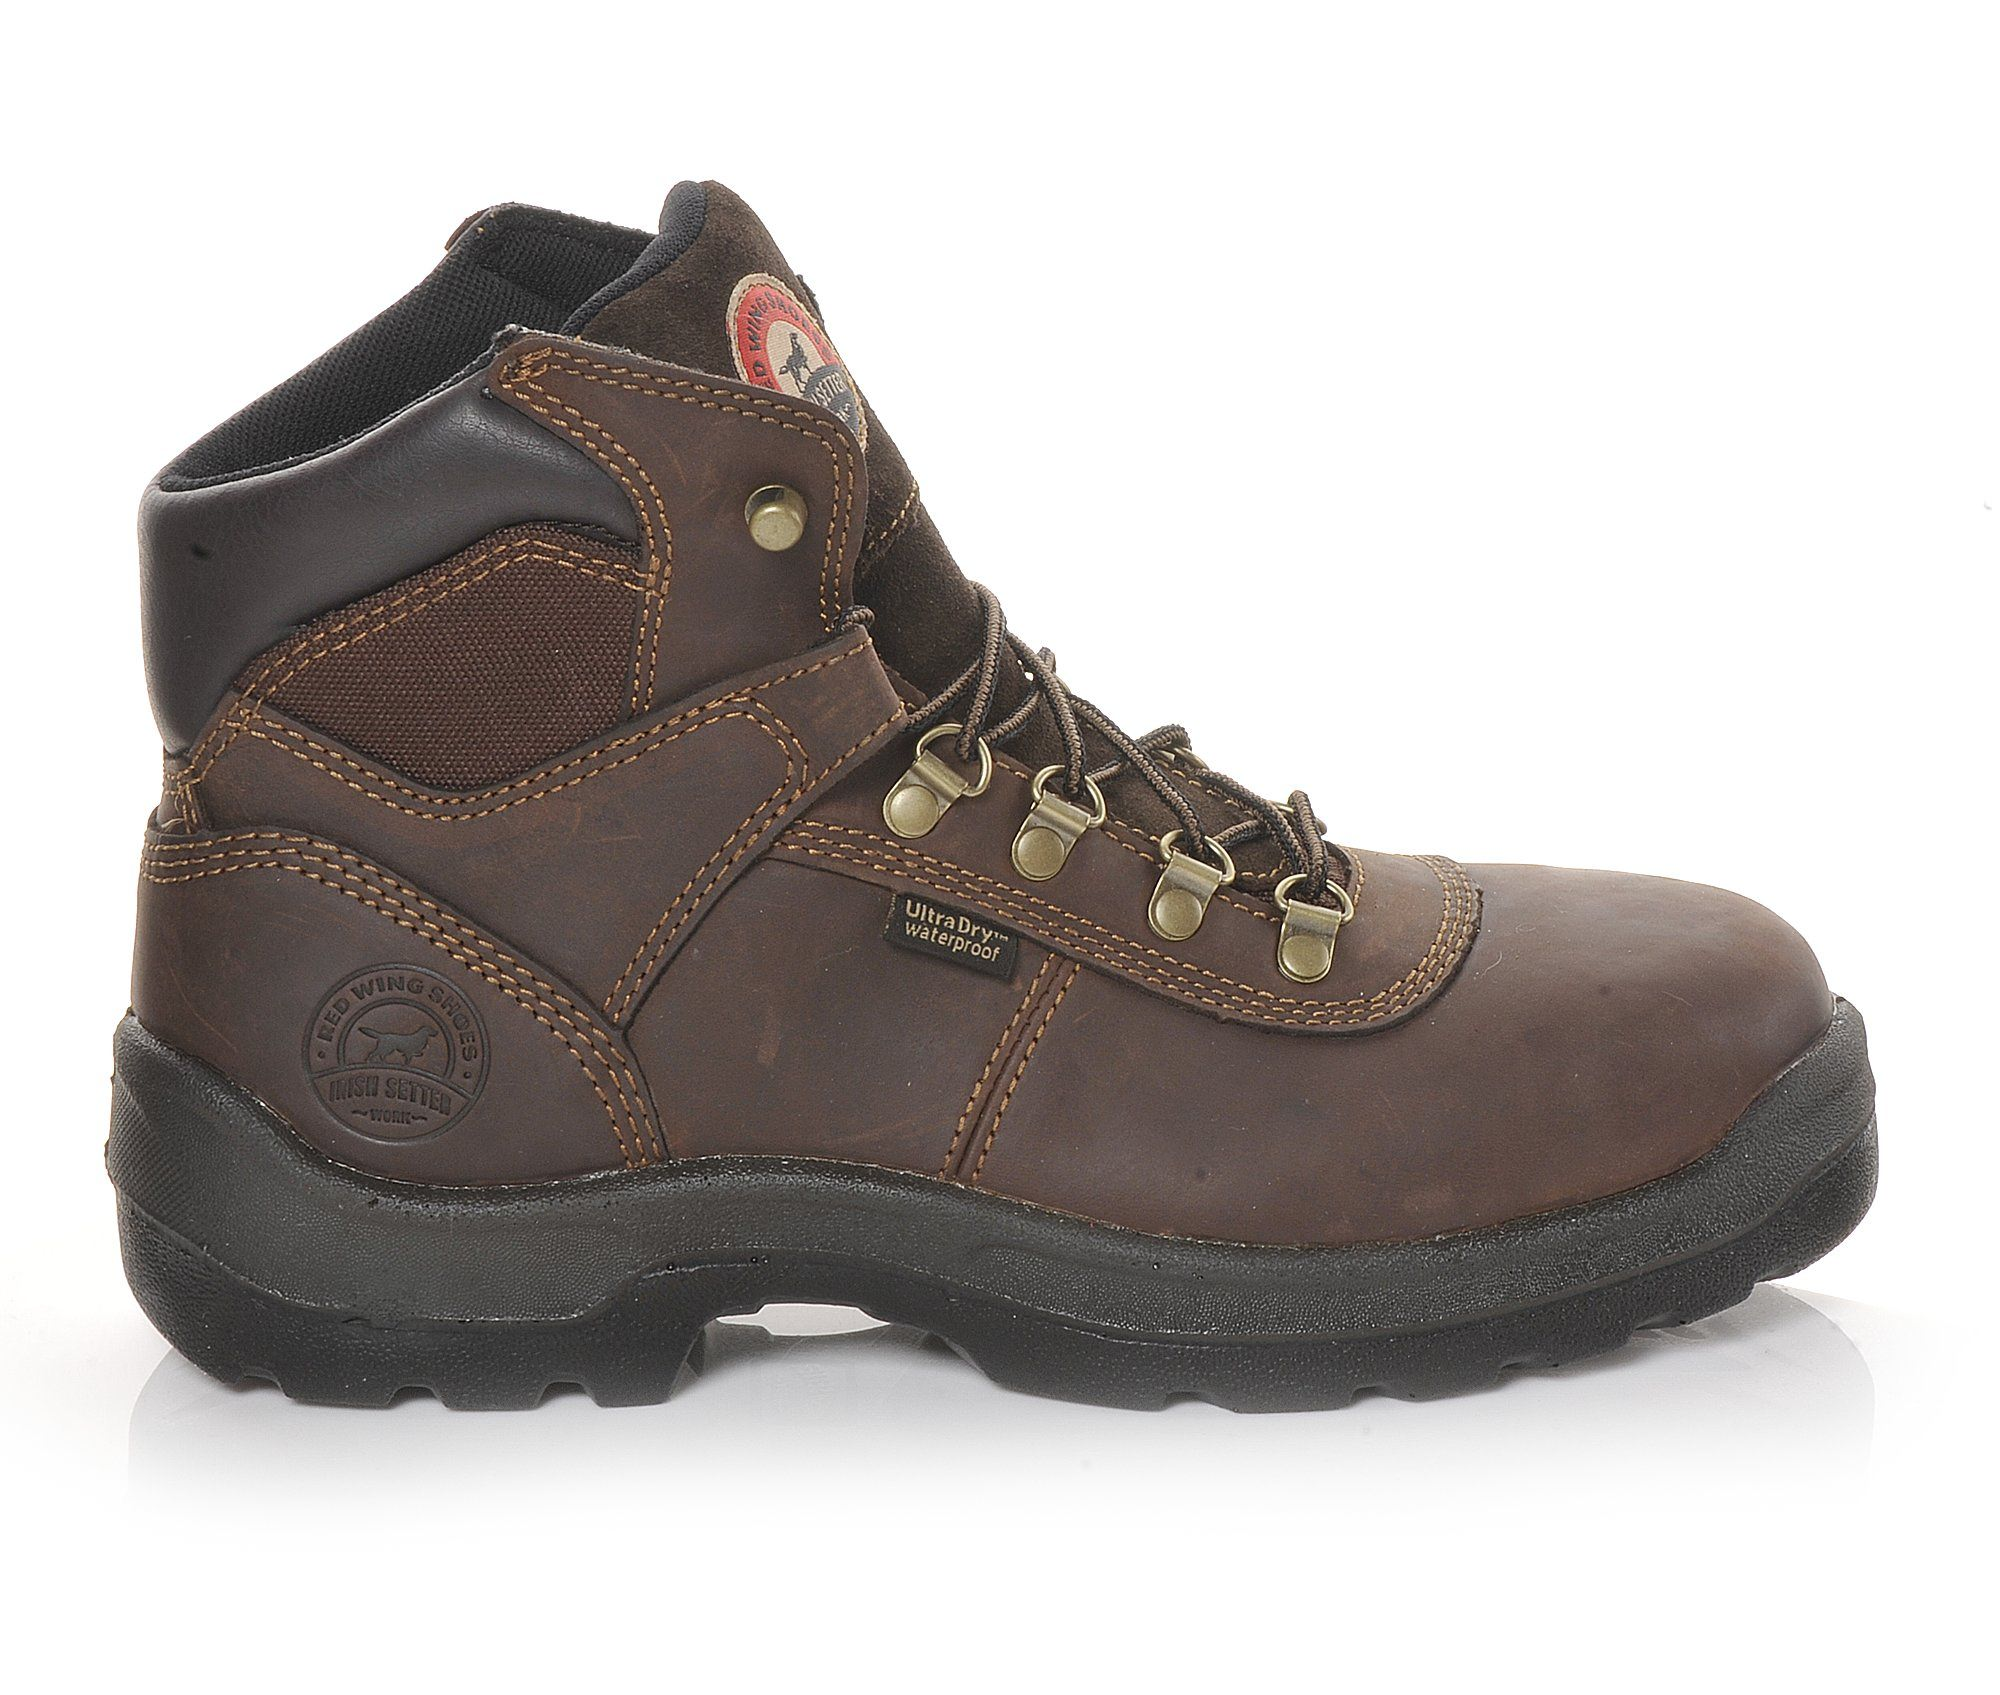 Red Wing-Irish Setter 83617 Ely Hiker 6 Inch Men's Boots (Brown Leather)